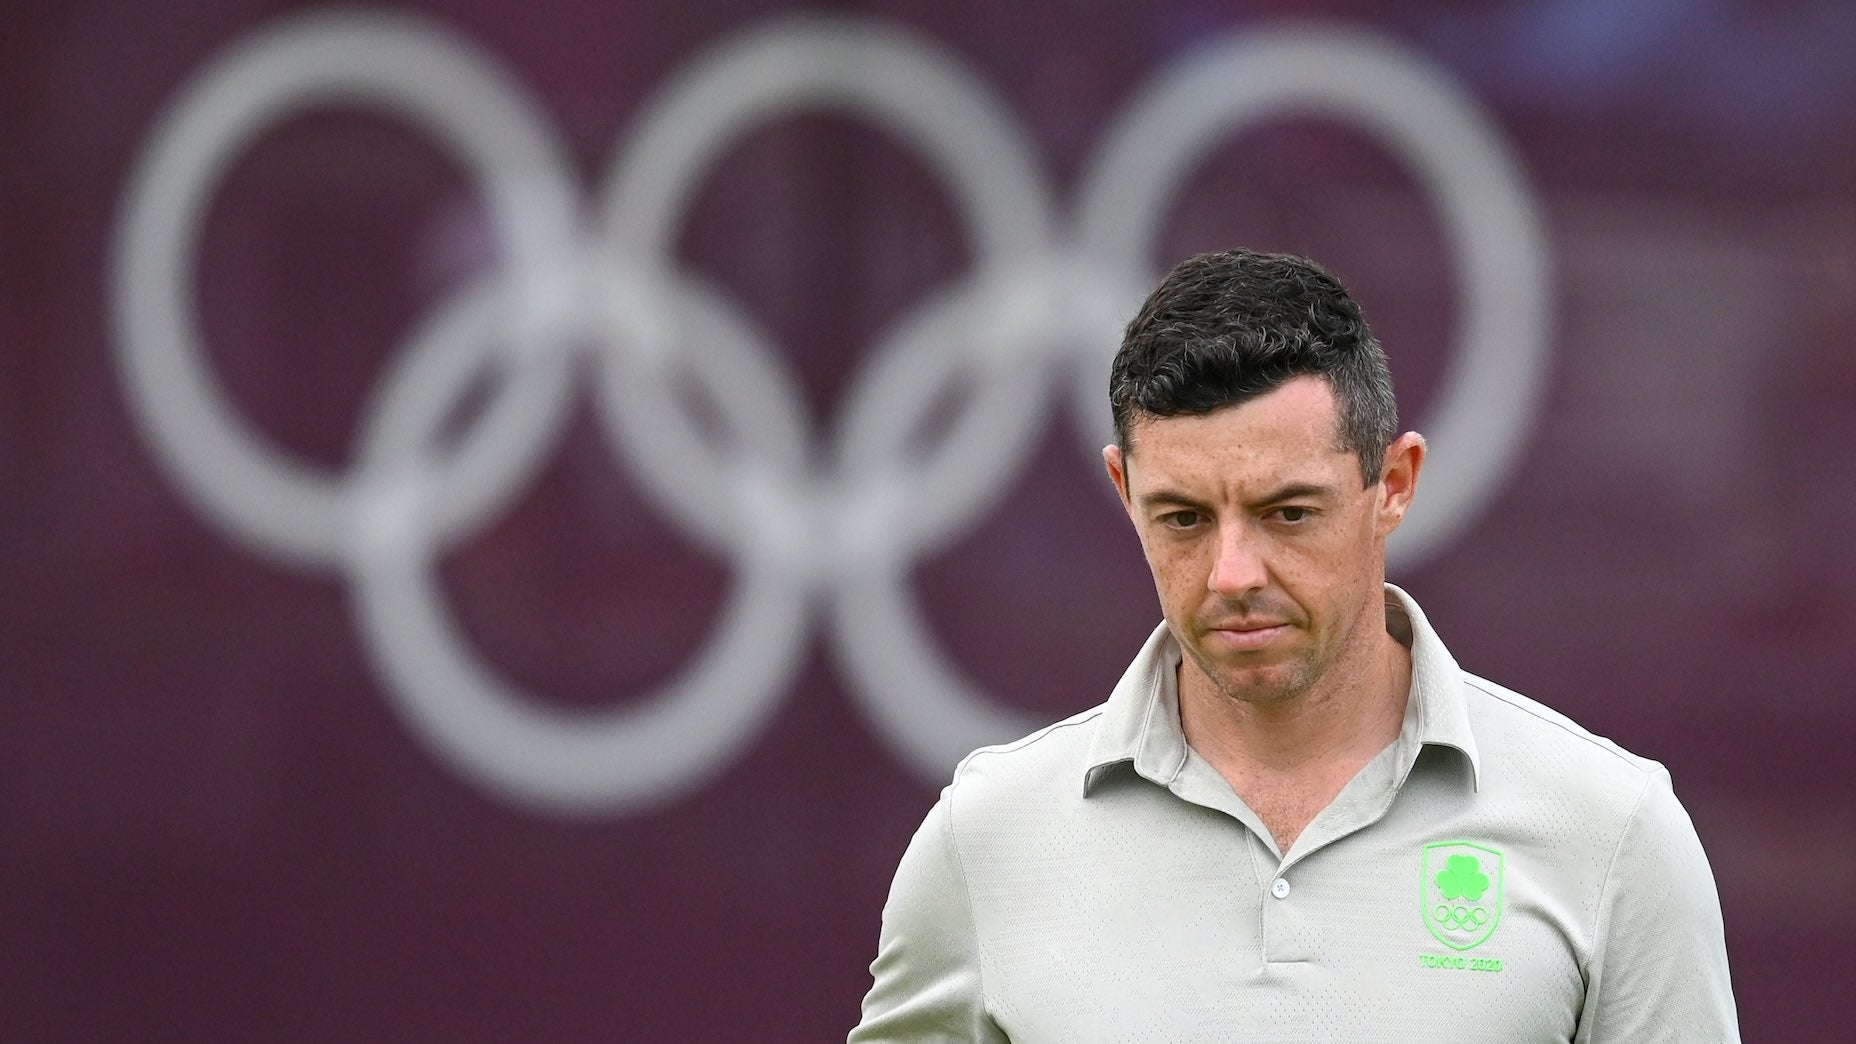 Tokyo , Japan - 29 July 2021; Rory McIlroy of Ireland on the 18th during round 1 of the men's individual stroke play at the Kasumigaseki Country Club during the 2020 Tokyo Summer Olympic Games in Kawagoe, Saitama, Japan. (Photo By Stephen McCarthy/Sportsfile via Getty Images)